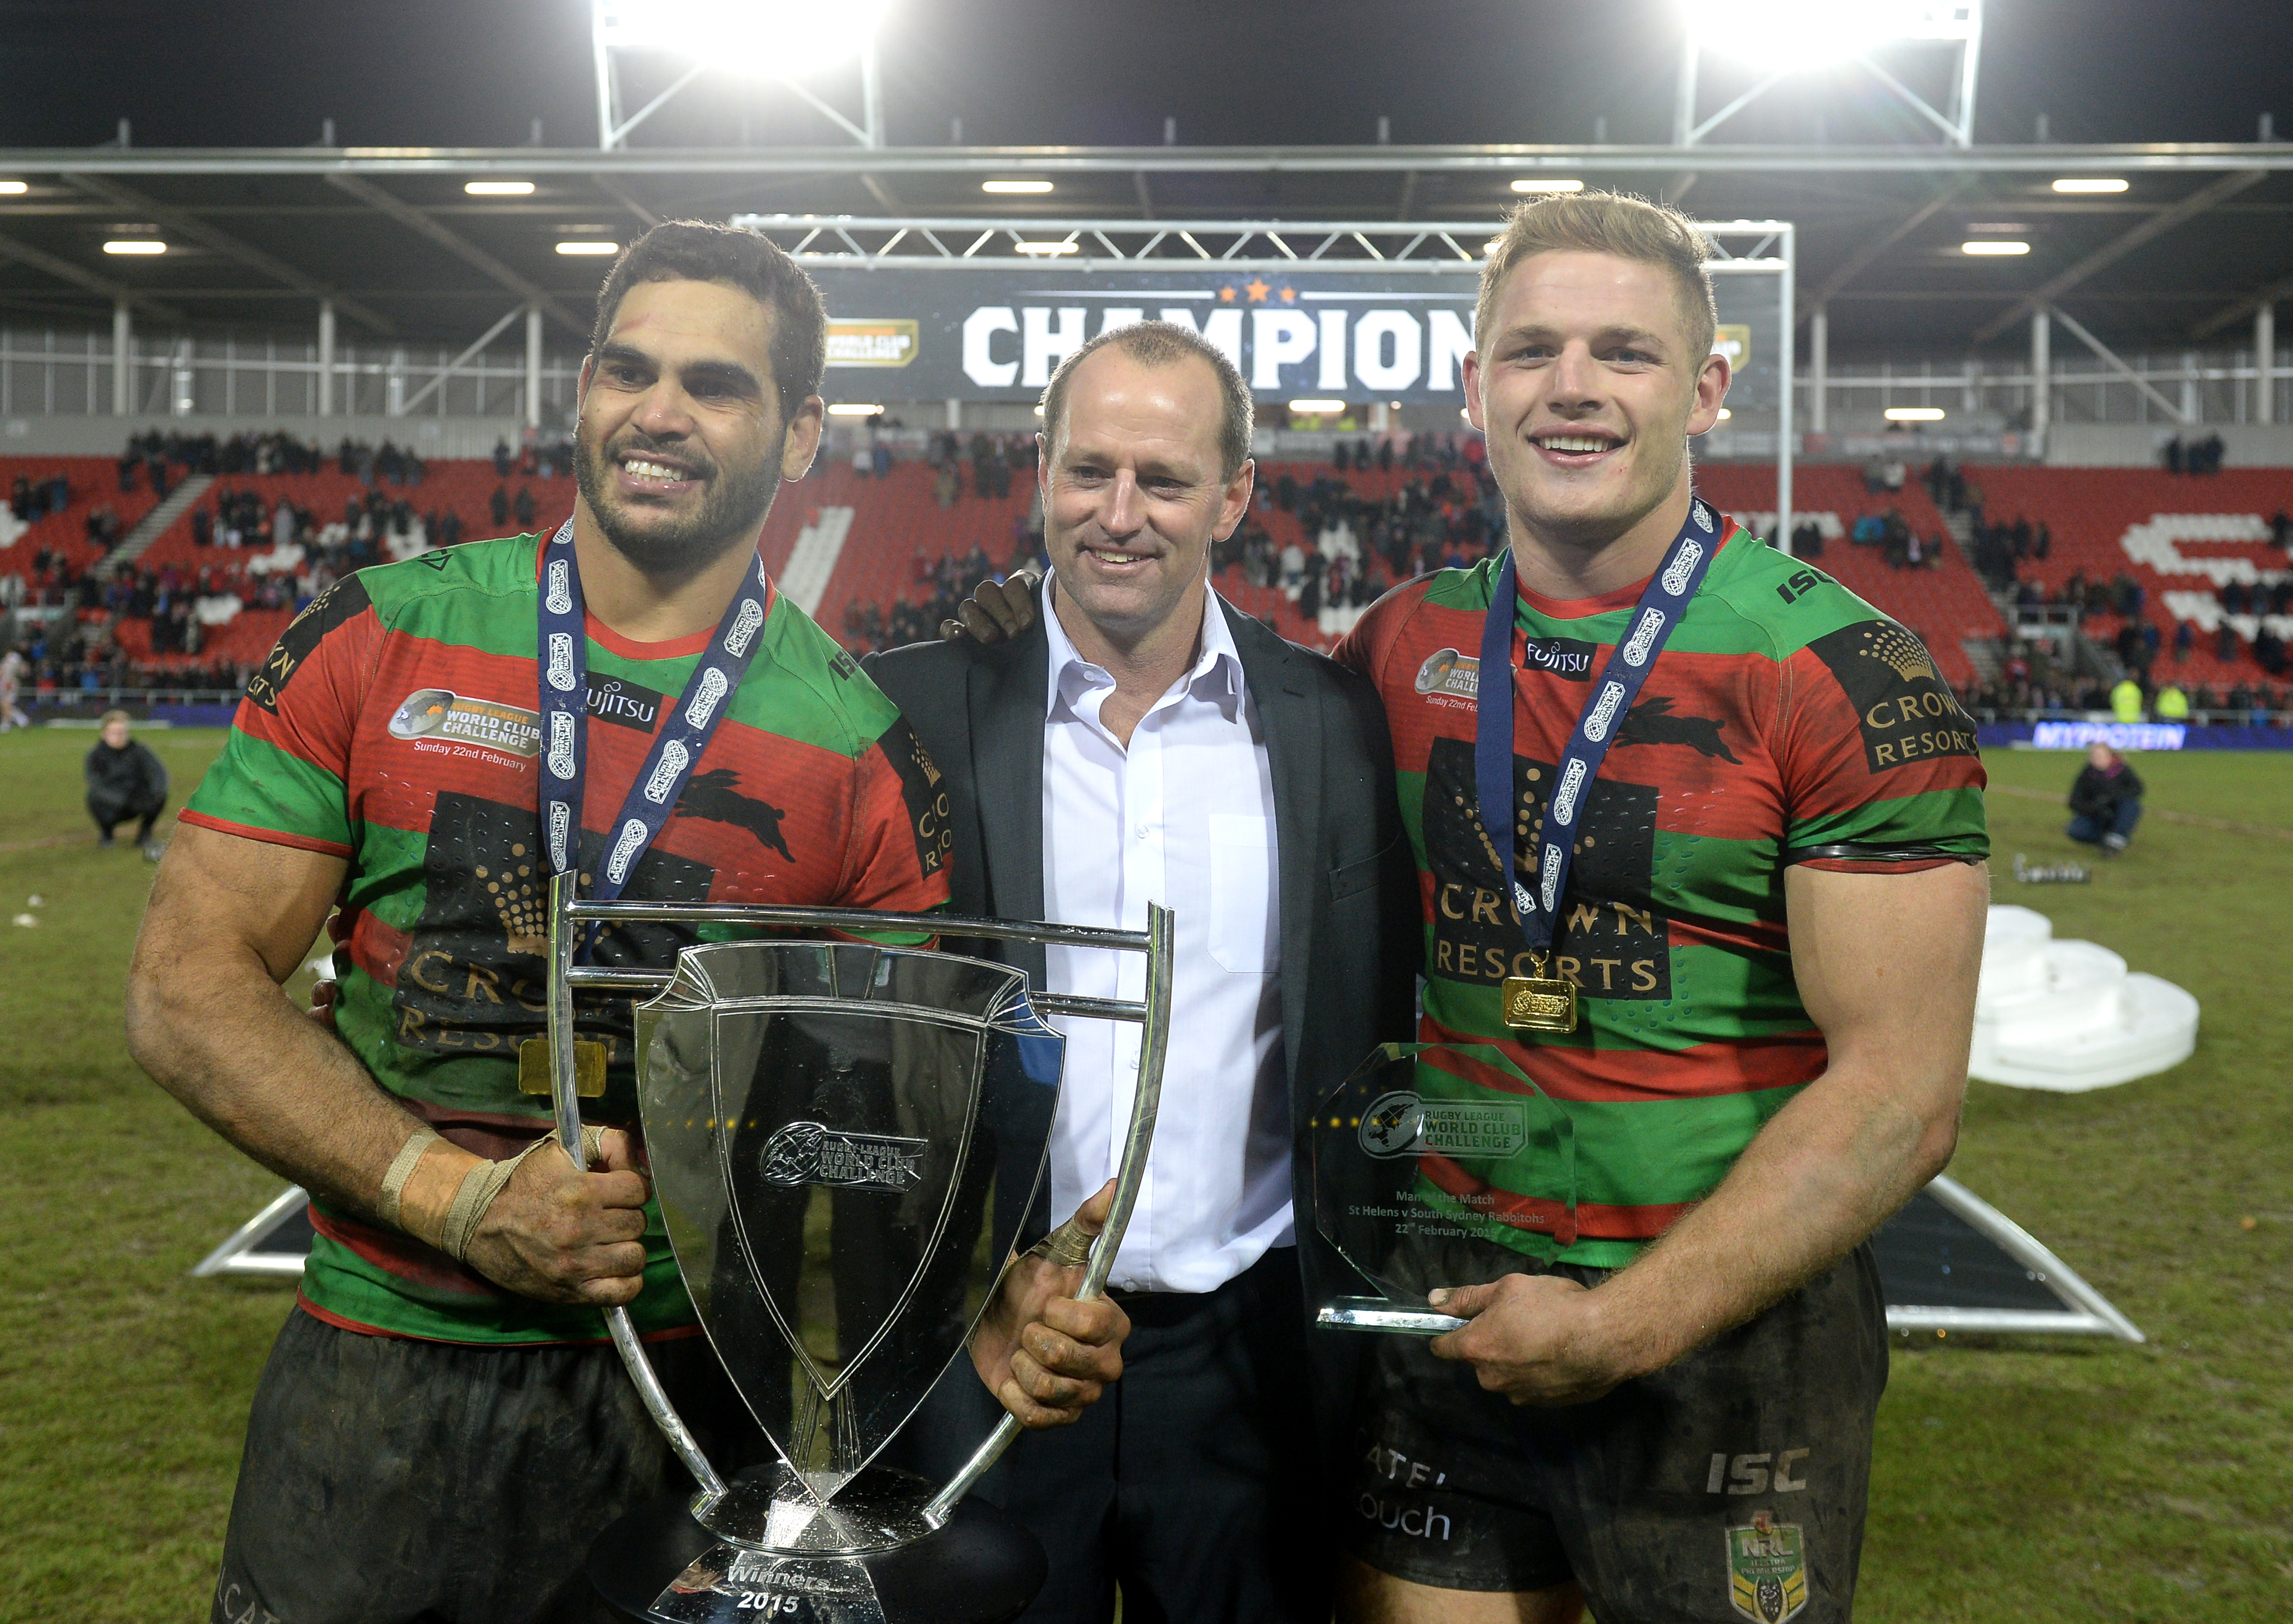 Inglis in 2015 after winning the World Club Series. Credit: PA